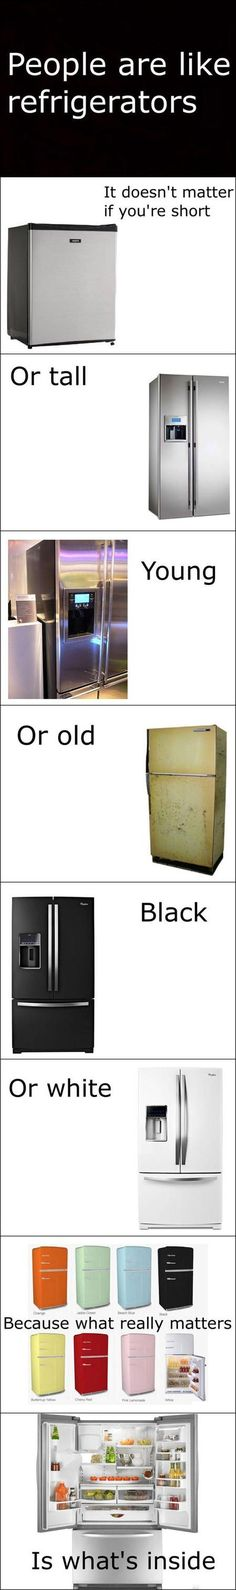 People Are Like Refrigerators